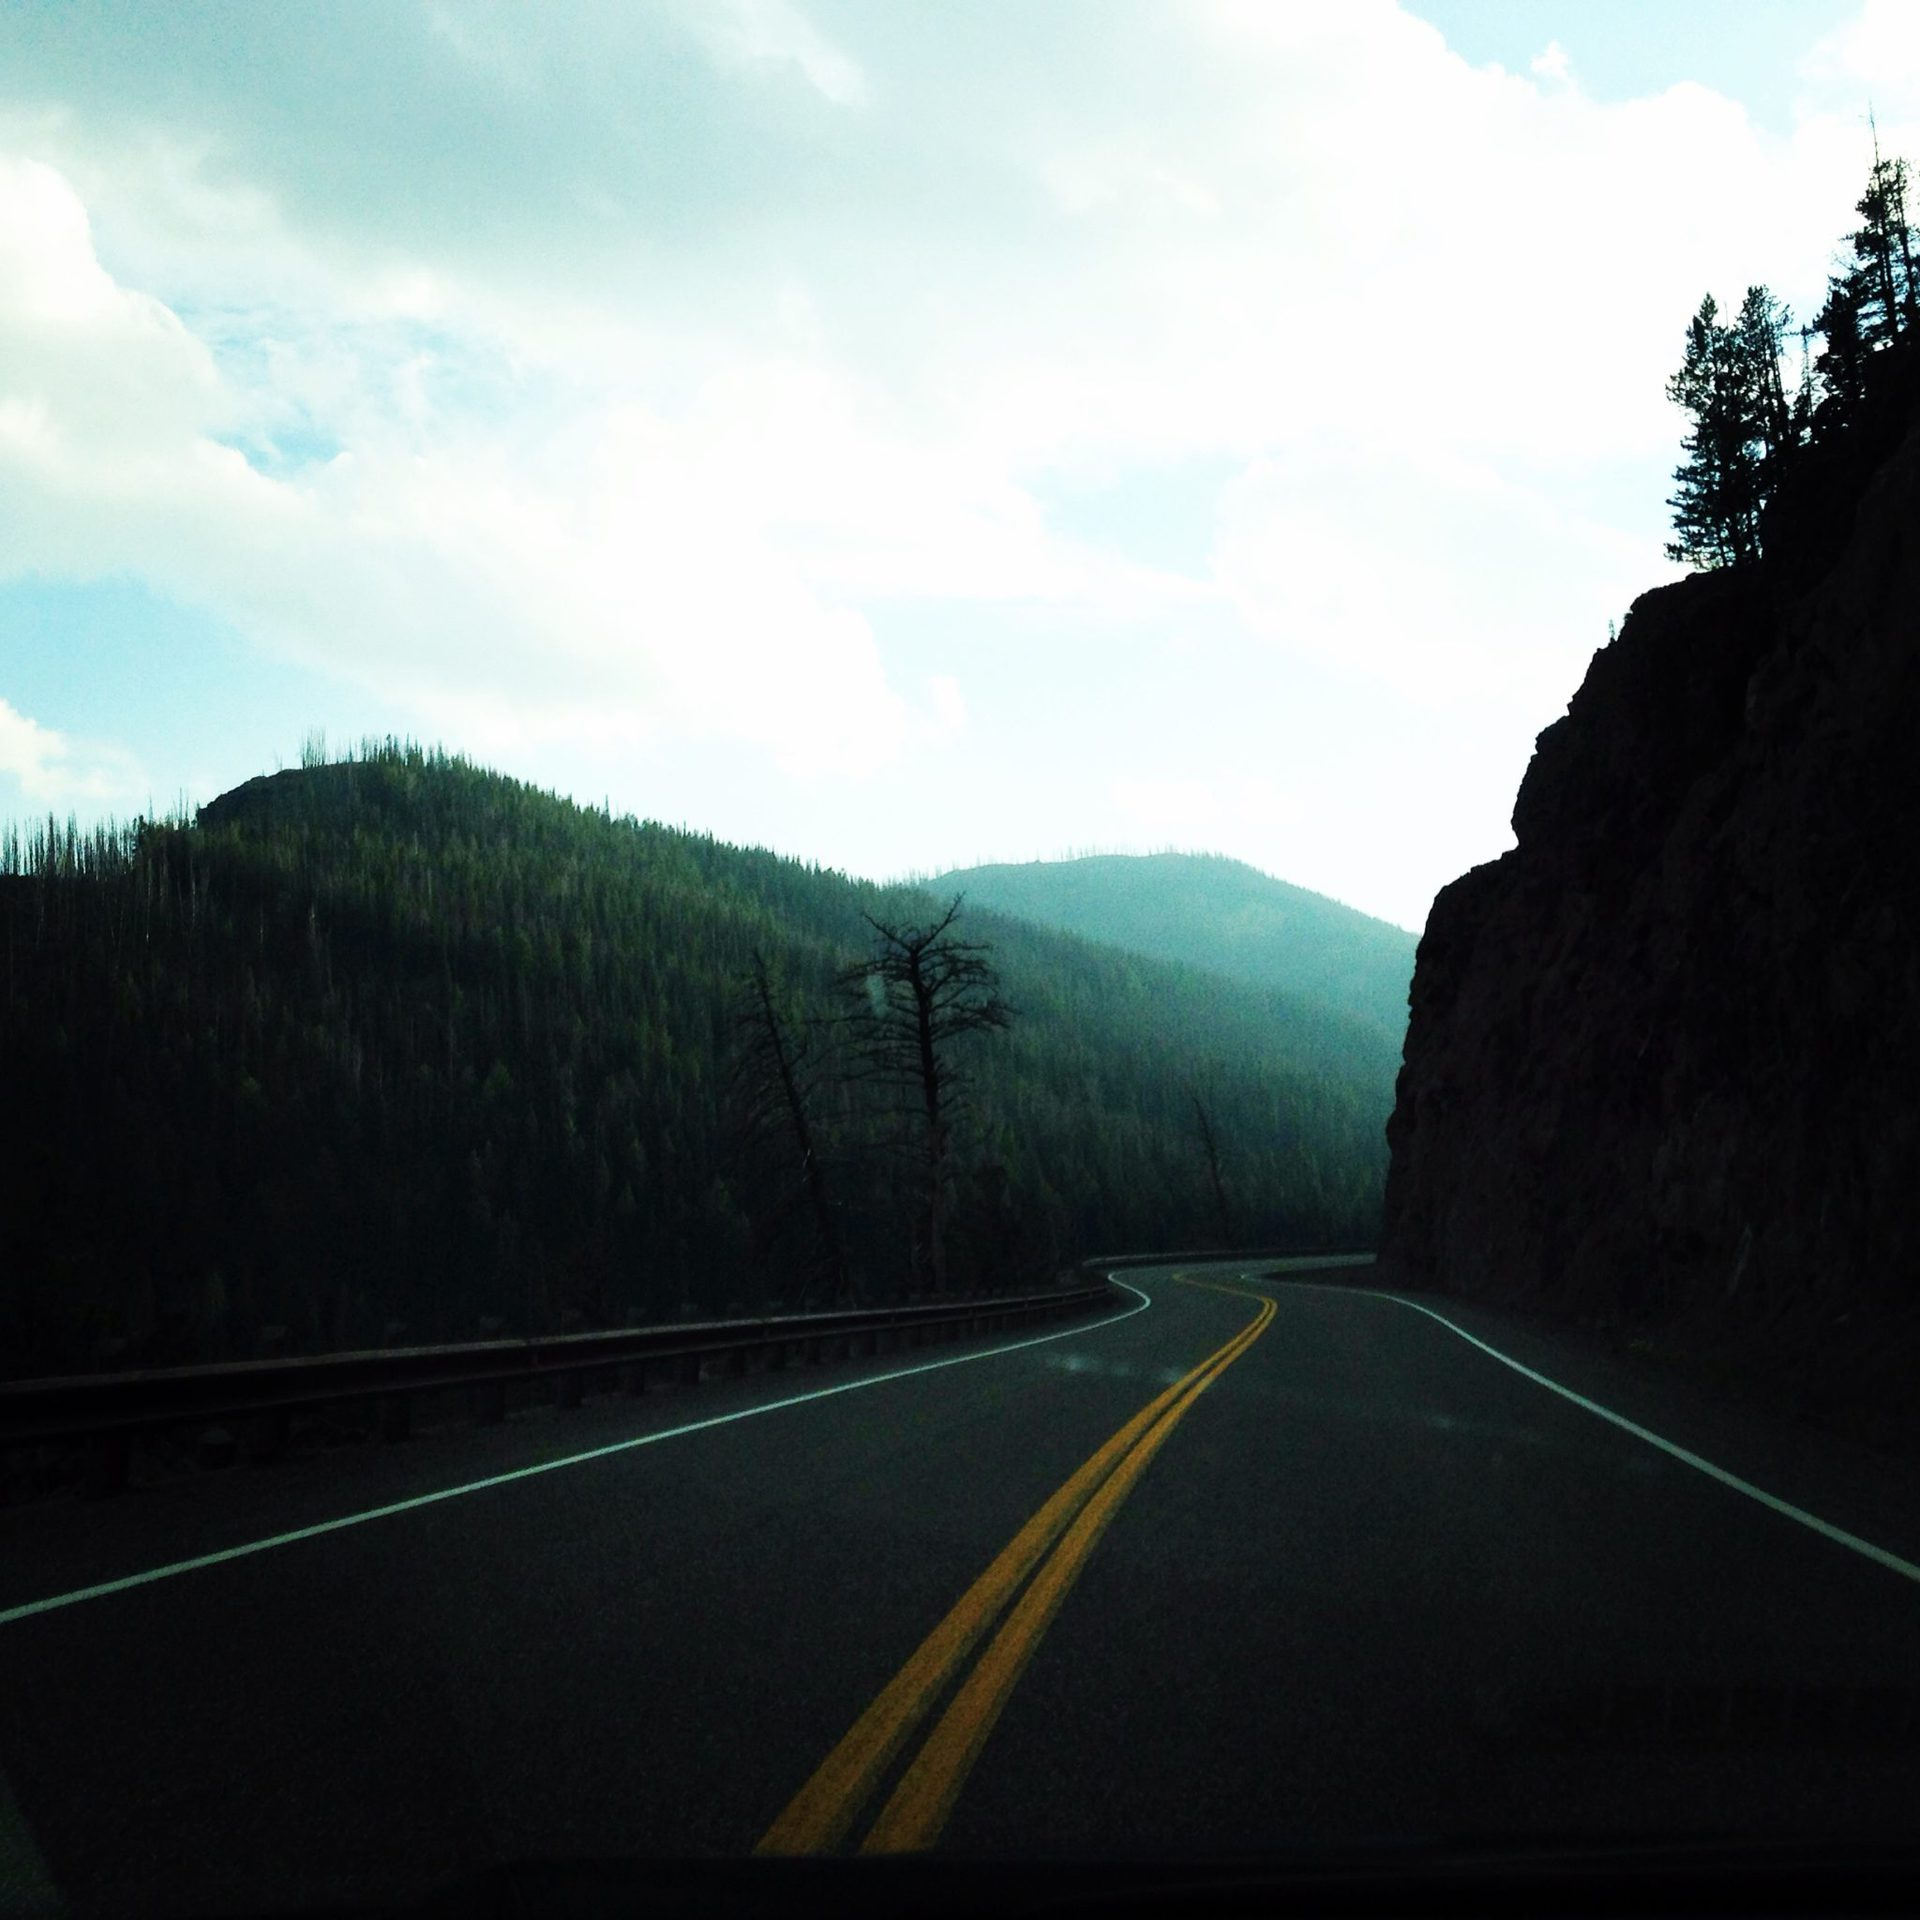 I'm Going on a Solo Cross-Country Road Trip of Inspiration and Discovery